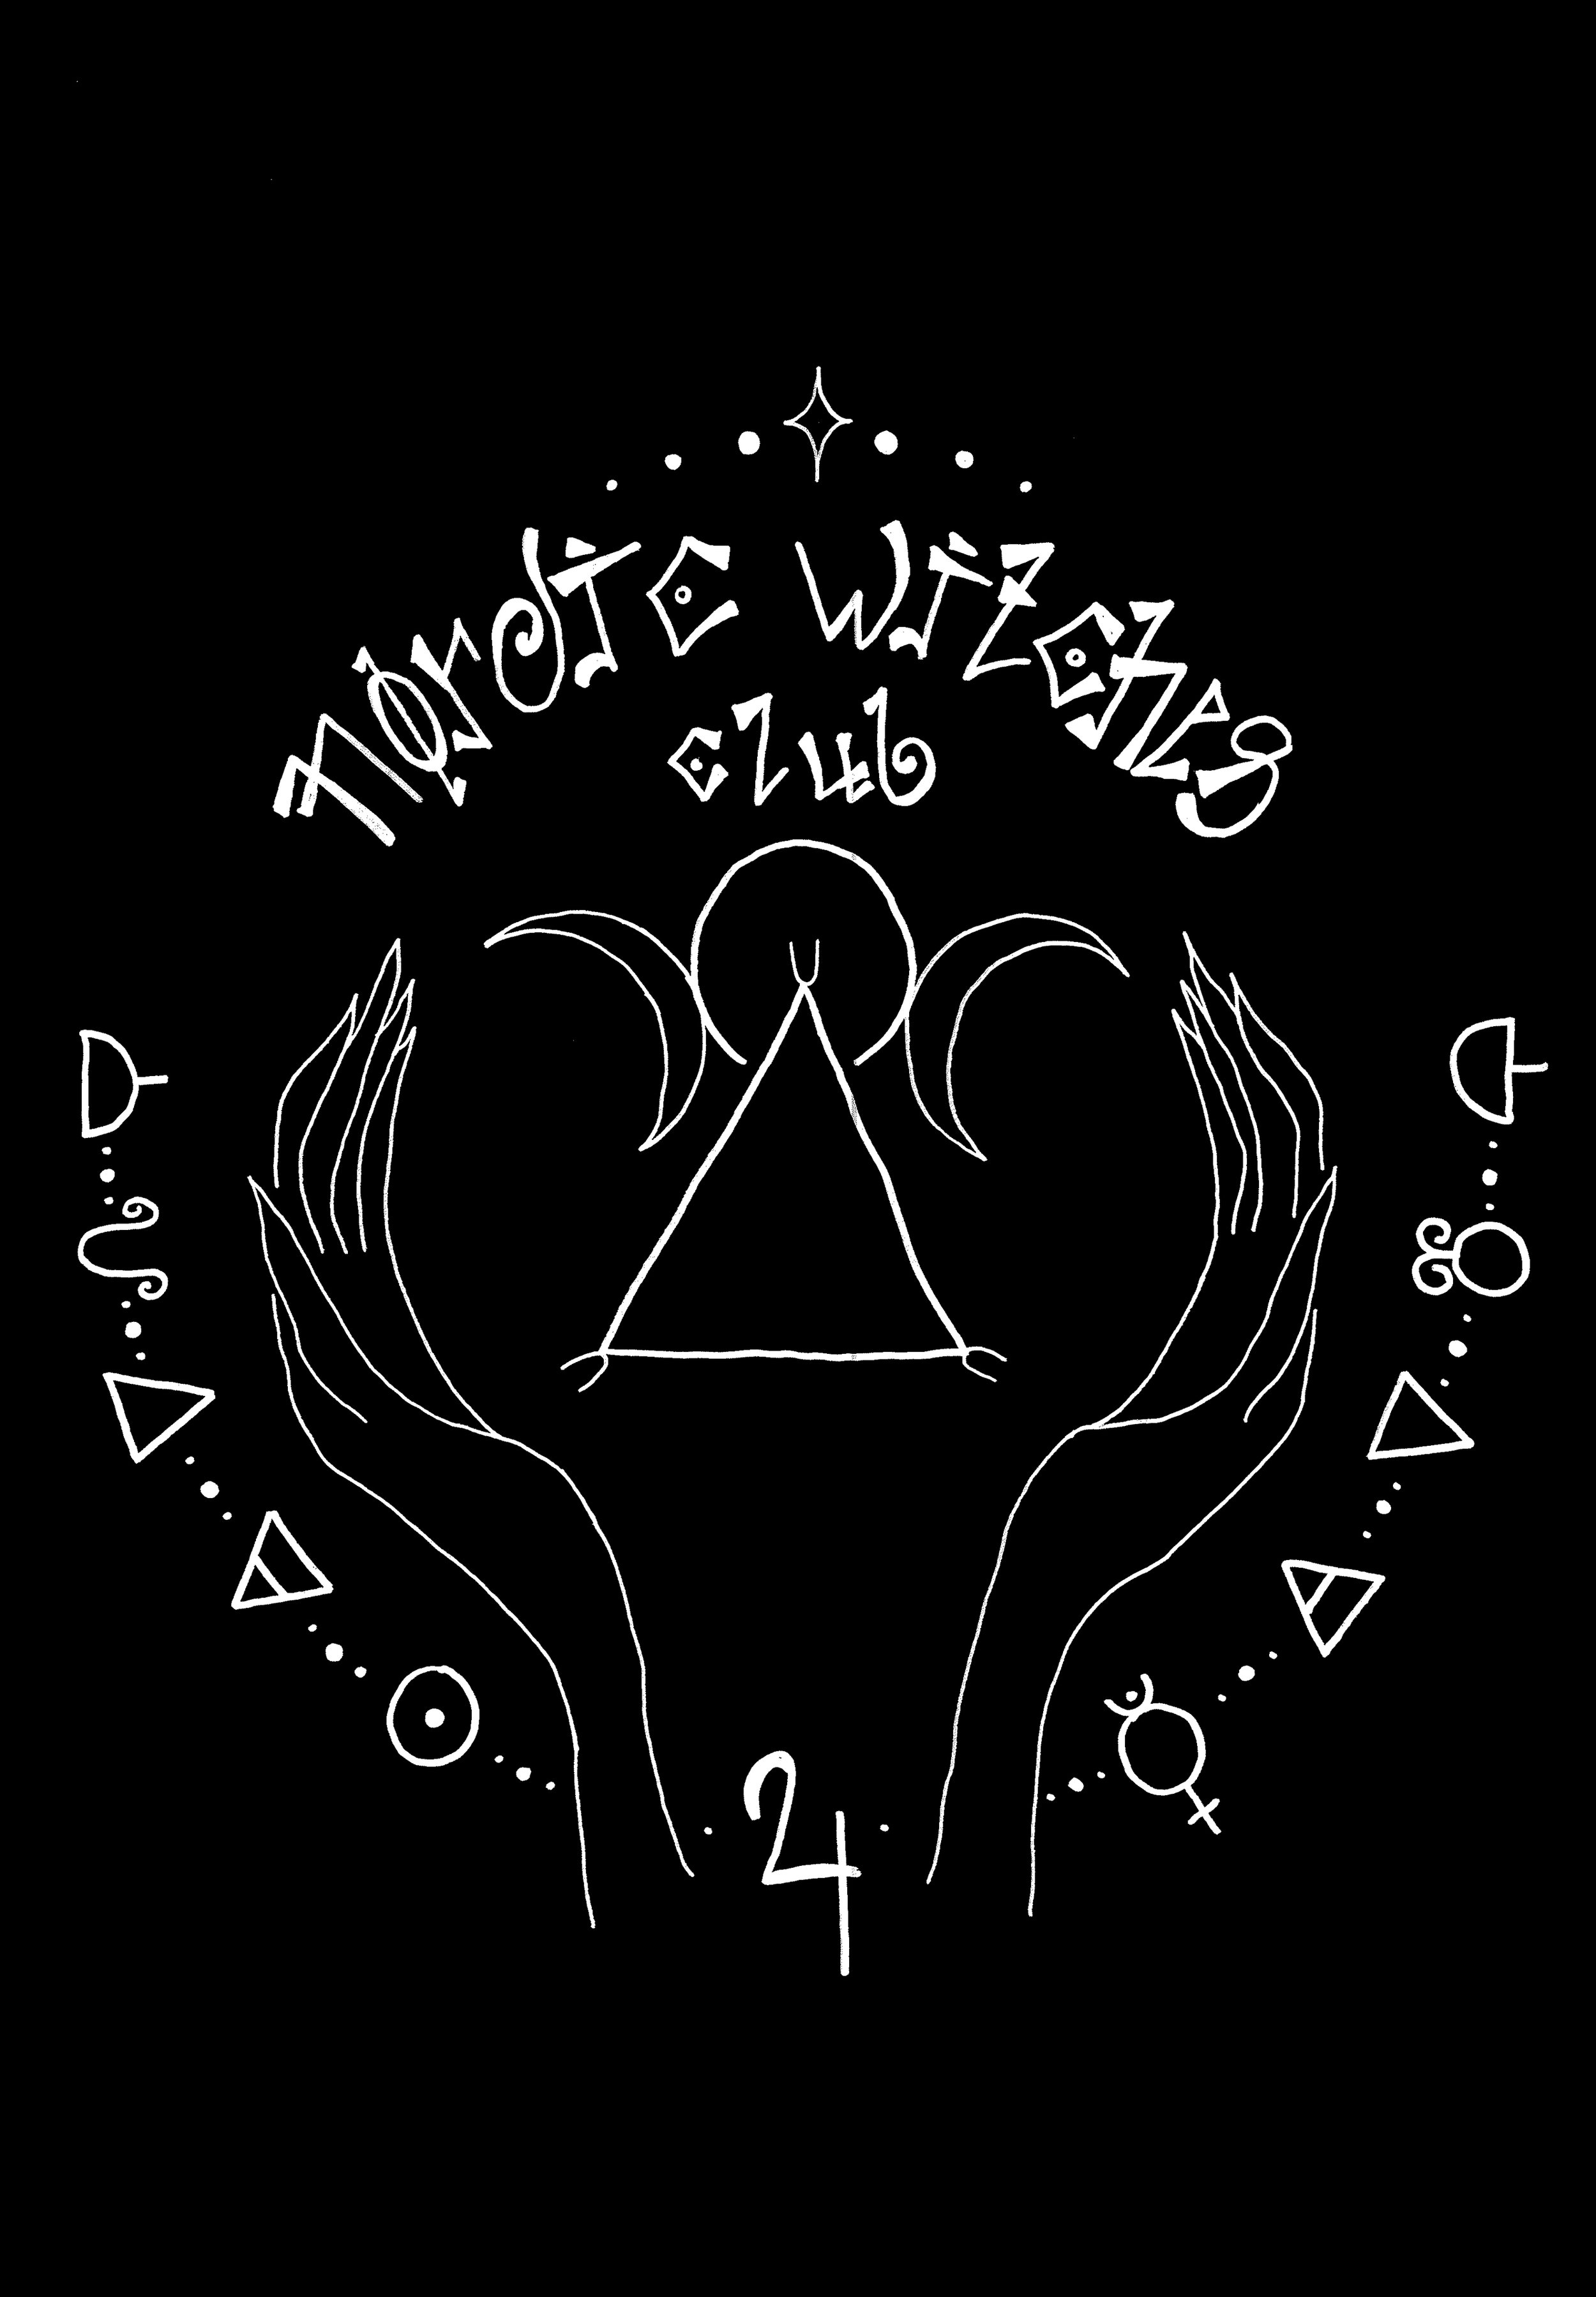 Nordic Witches Club Poster  €9.99–€14.99 Available in A4, A3